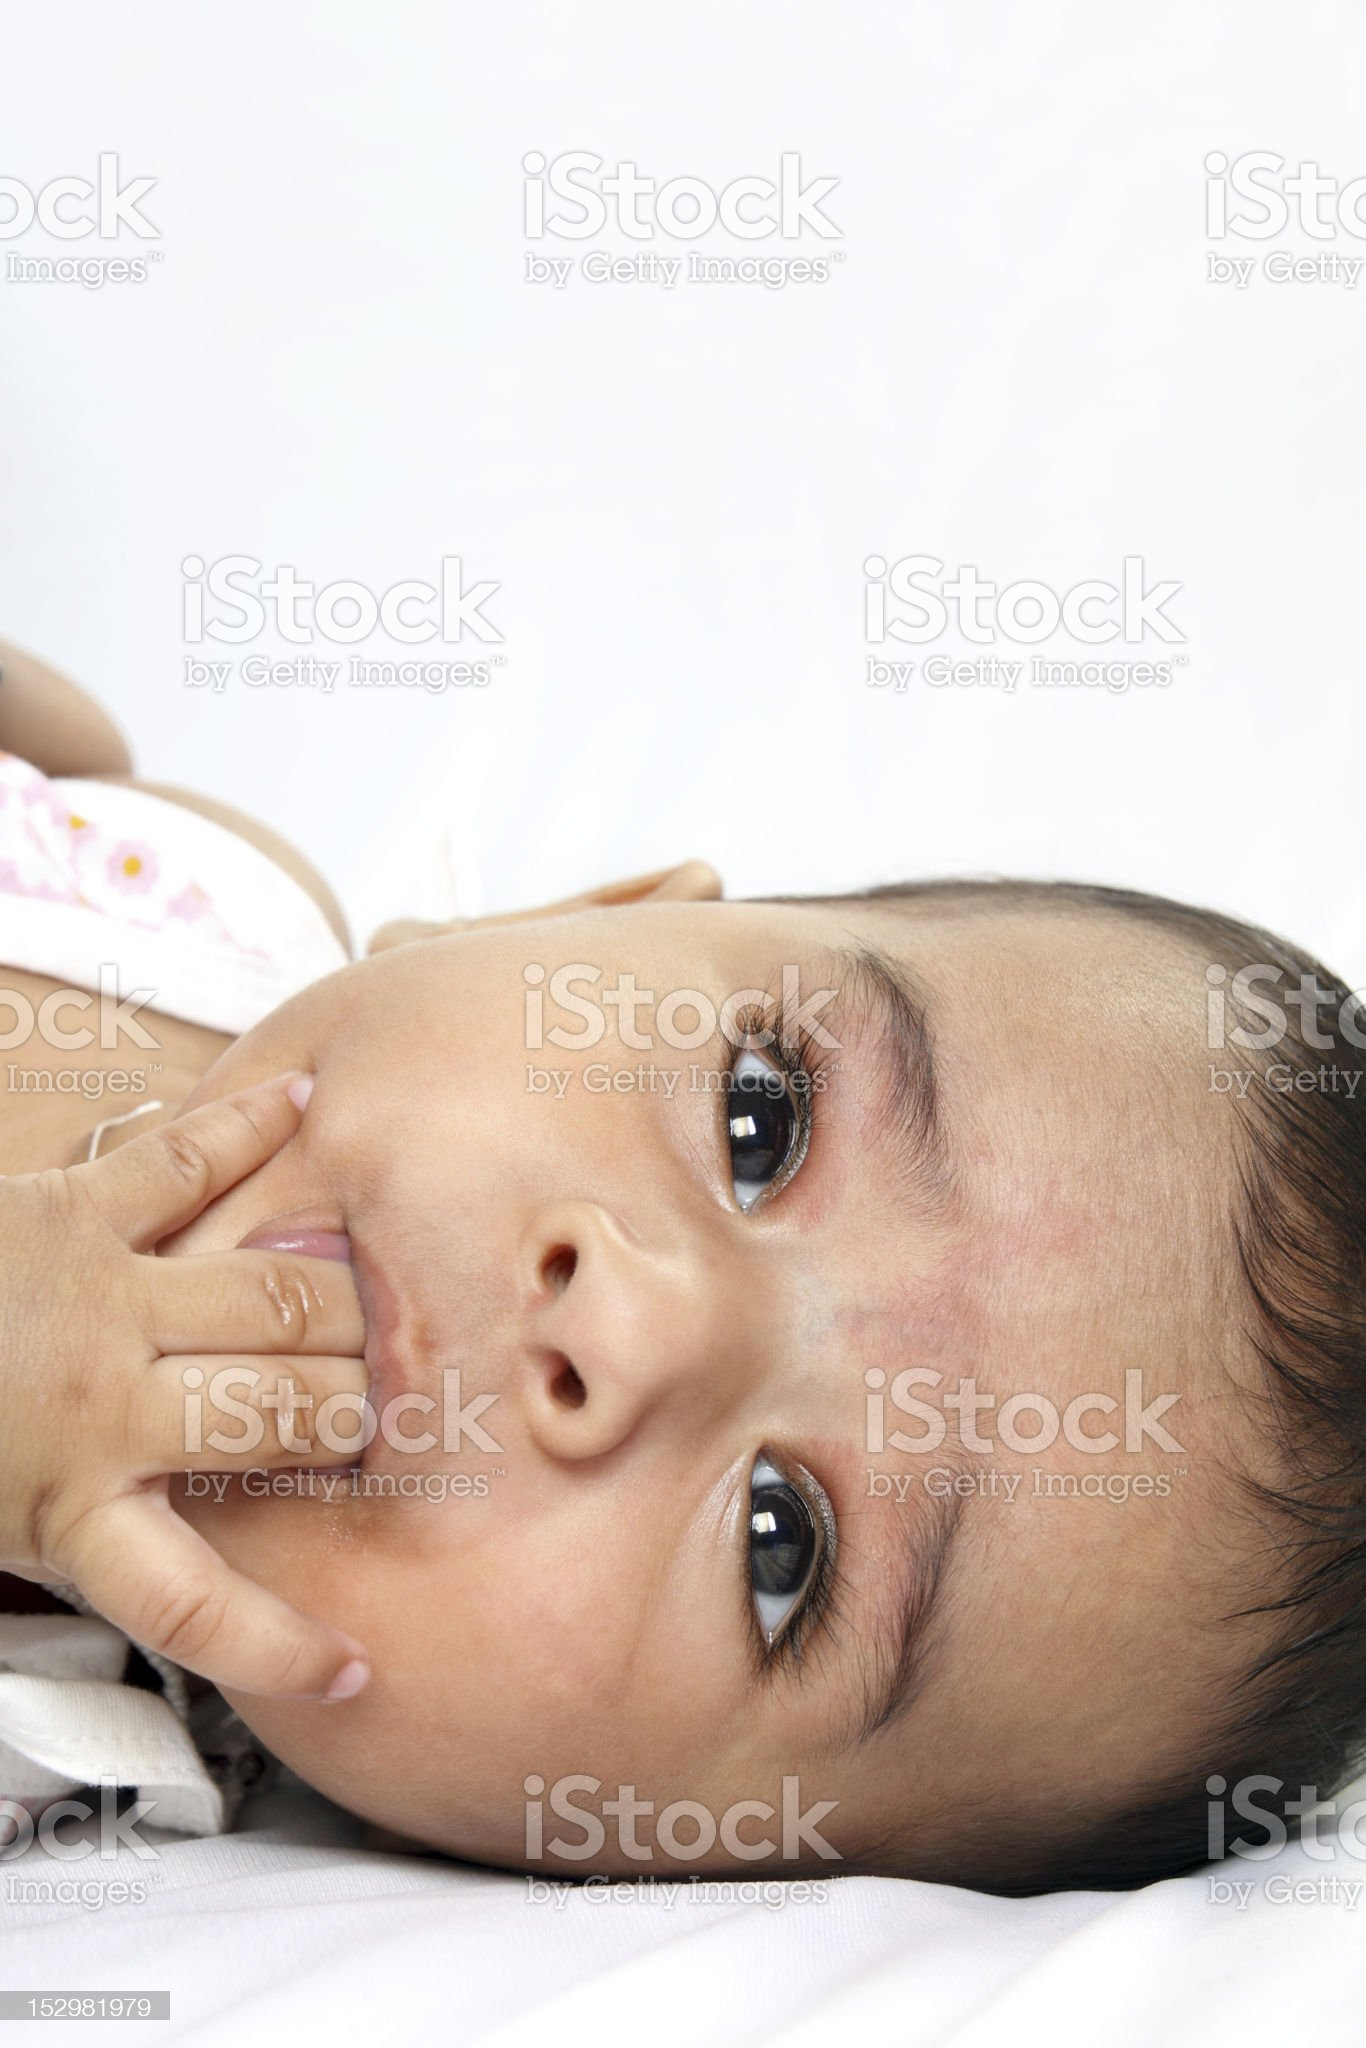 Portrait Of Indian Cute Baby royalty-free stock photo